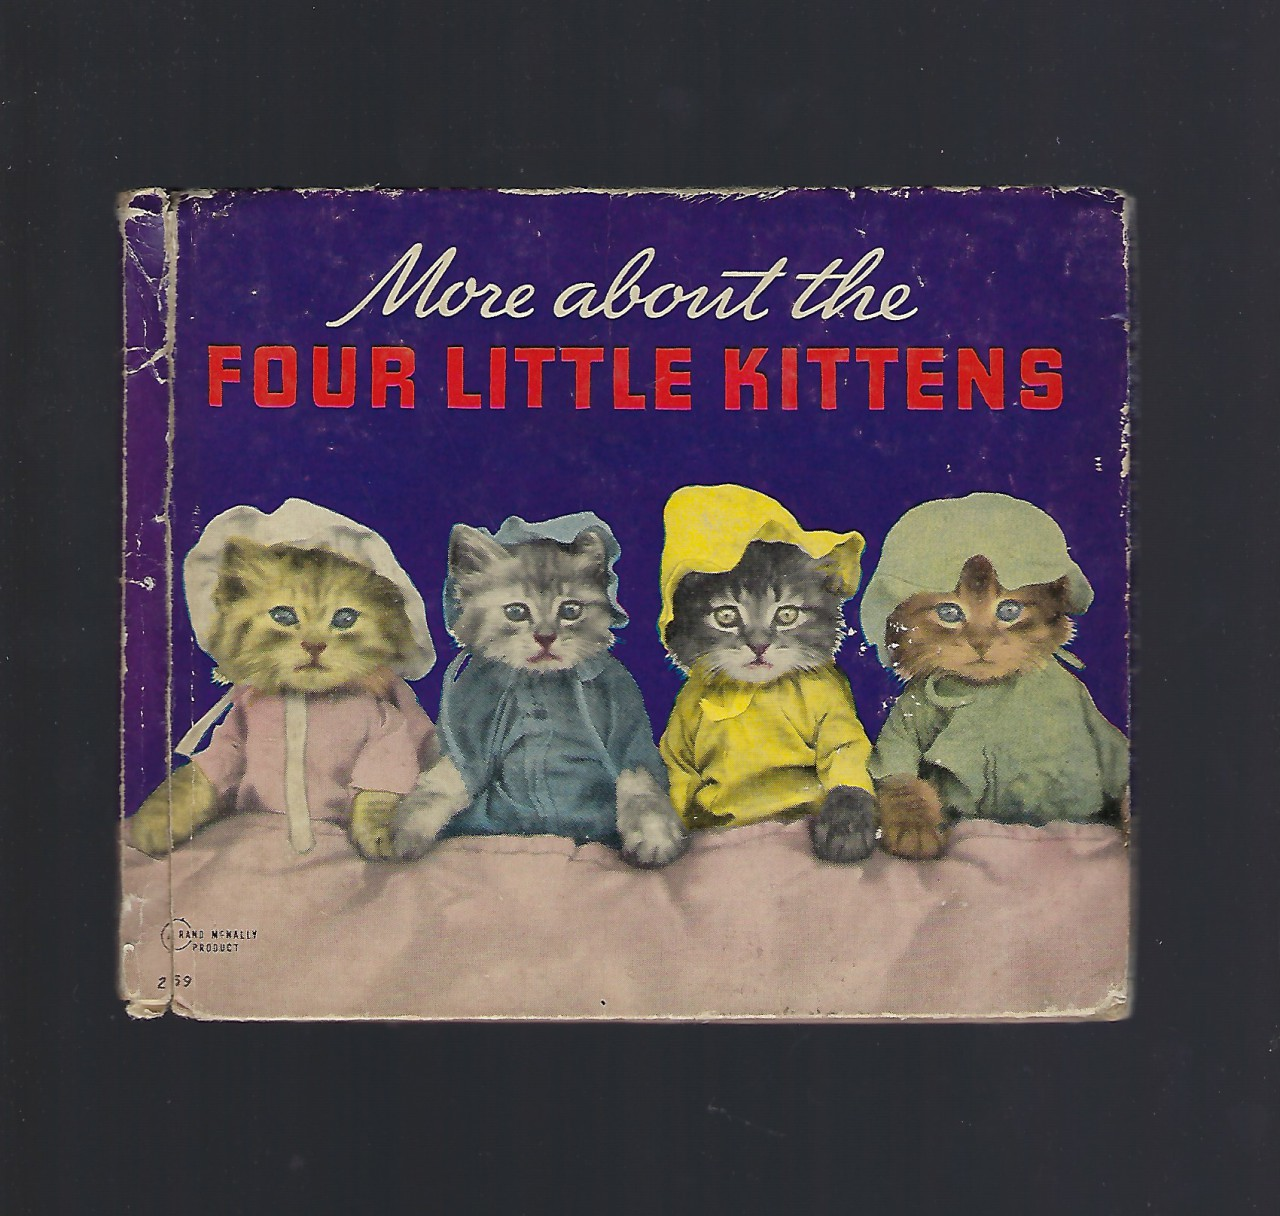 More About the Four Little Kittens 1938 Harry W Frees, Harry Whittier Frees; Harry Whittier Frees [Illustrator]